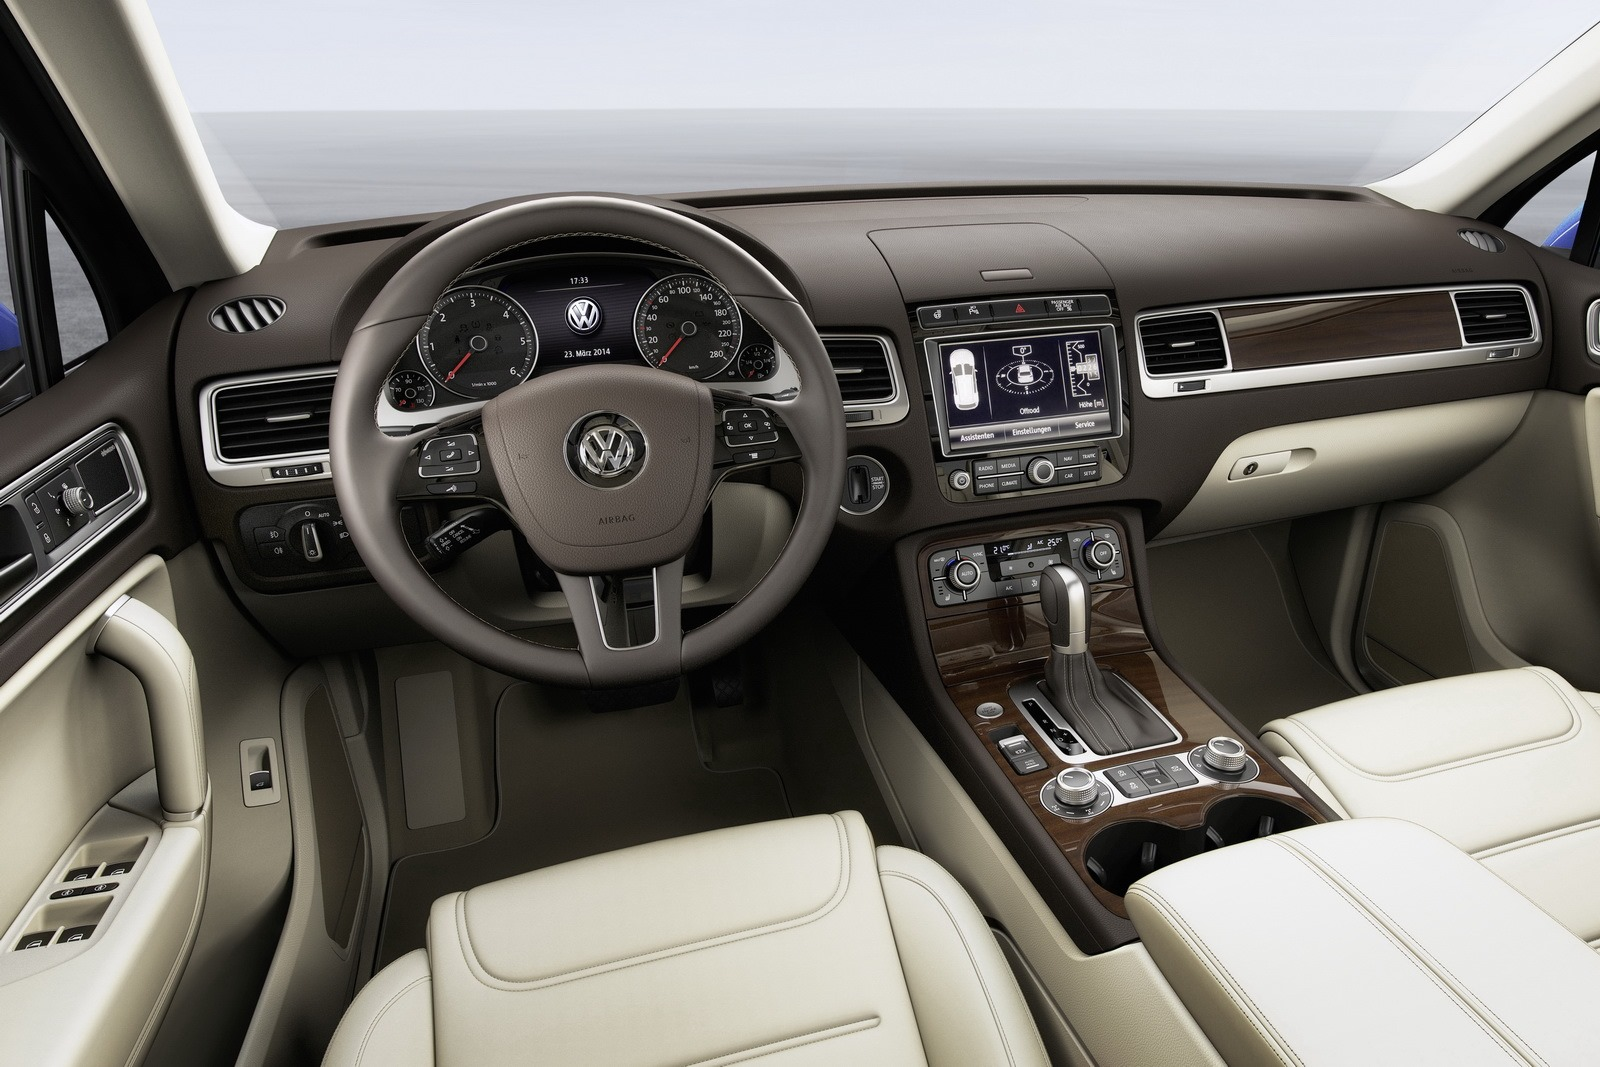 2015 volkswagen touareg facelift brings new features autoevolution. Black Bedroom Furniture Sets. Home Design Ideas